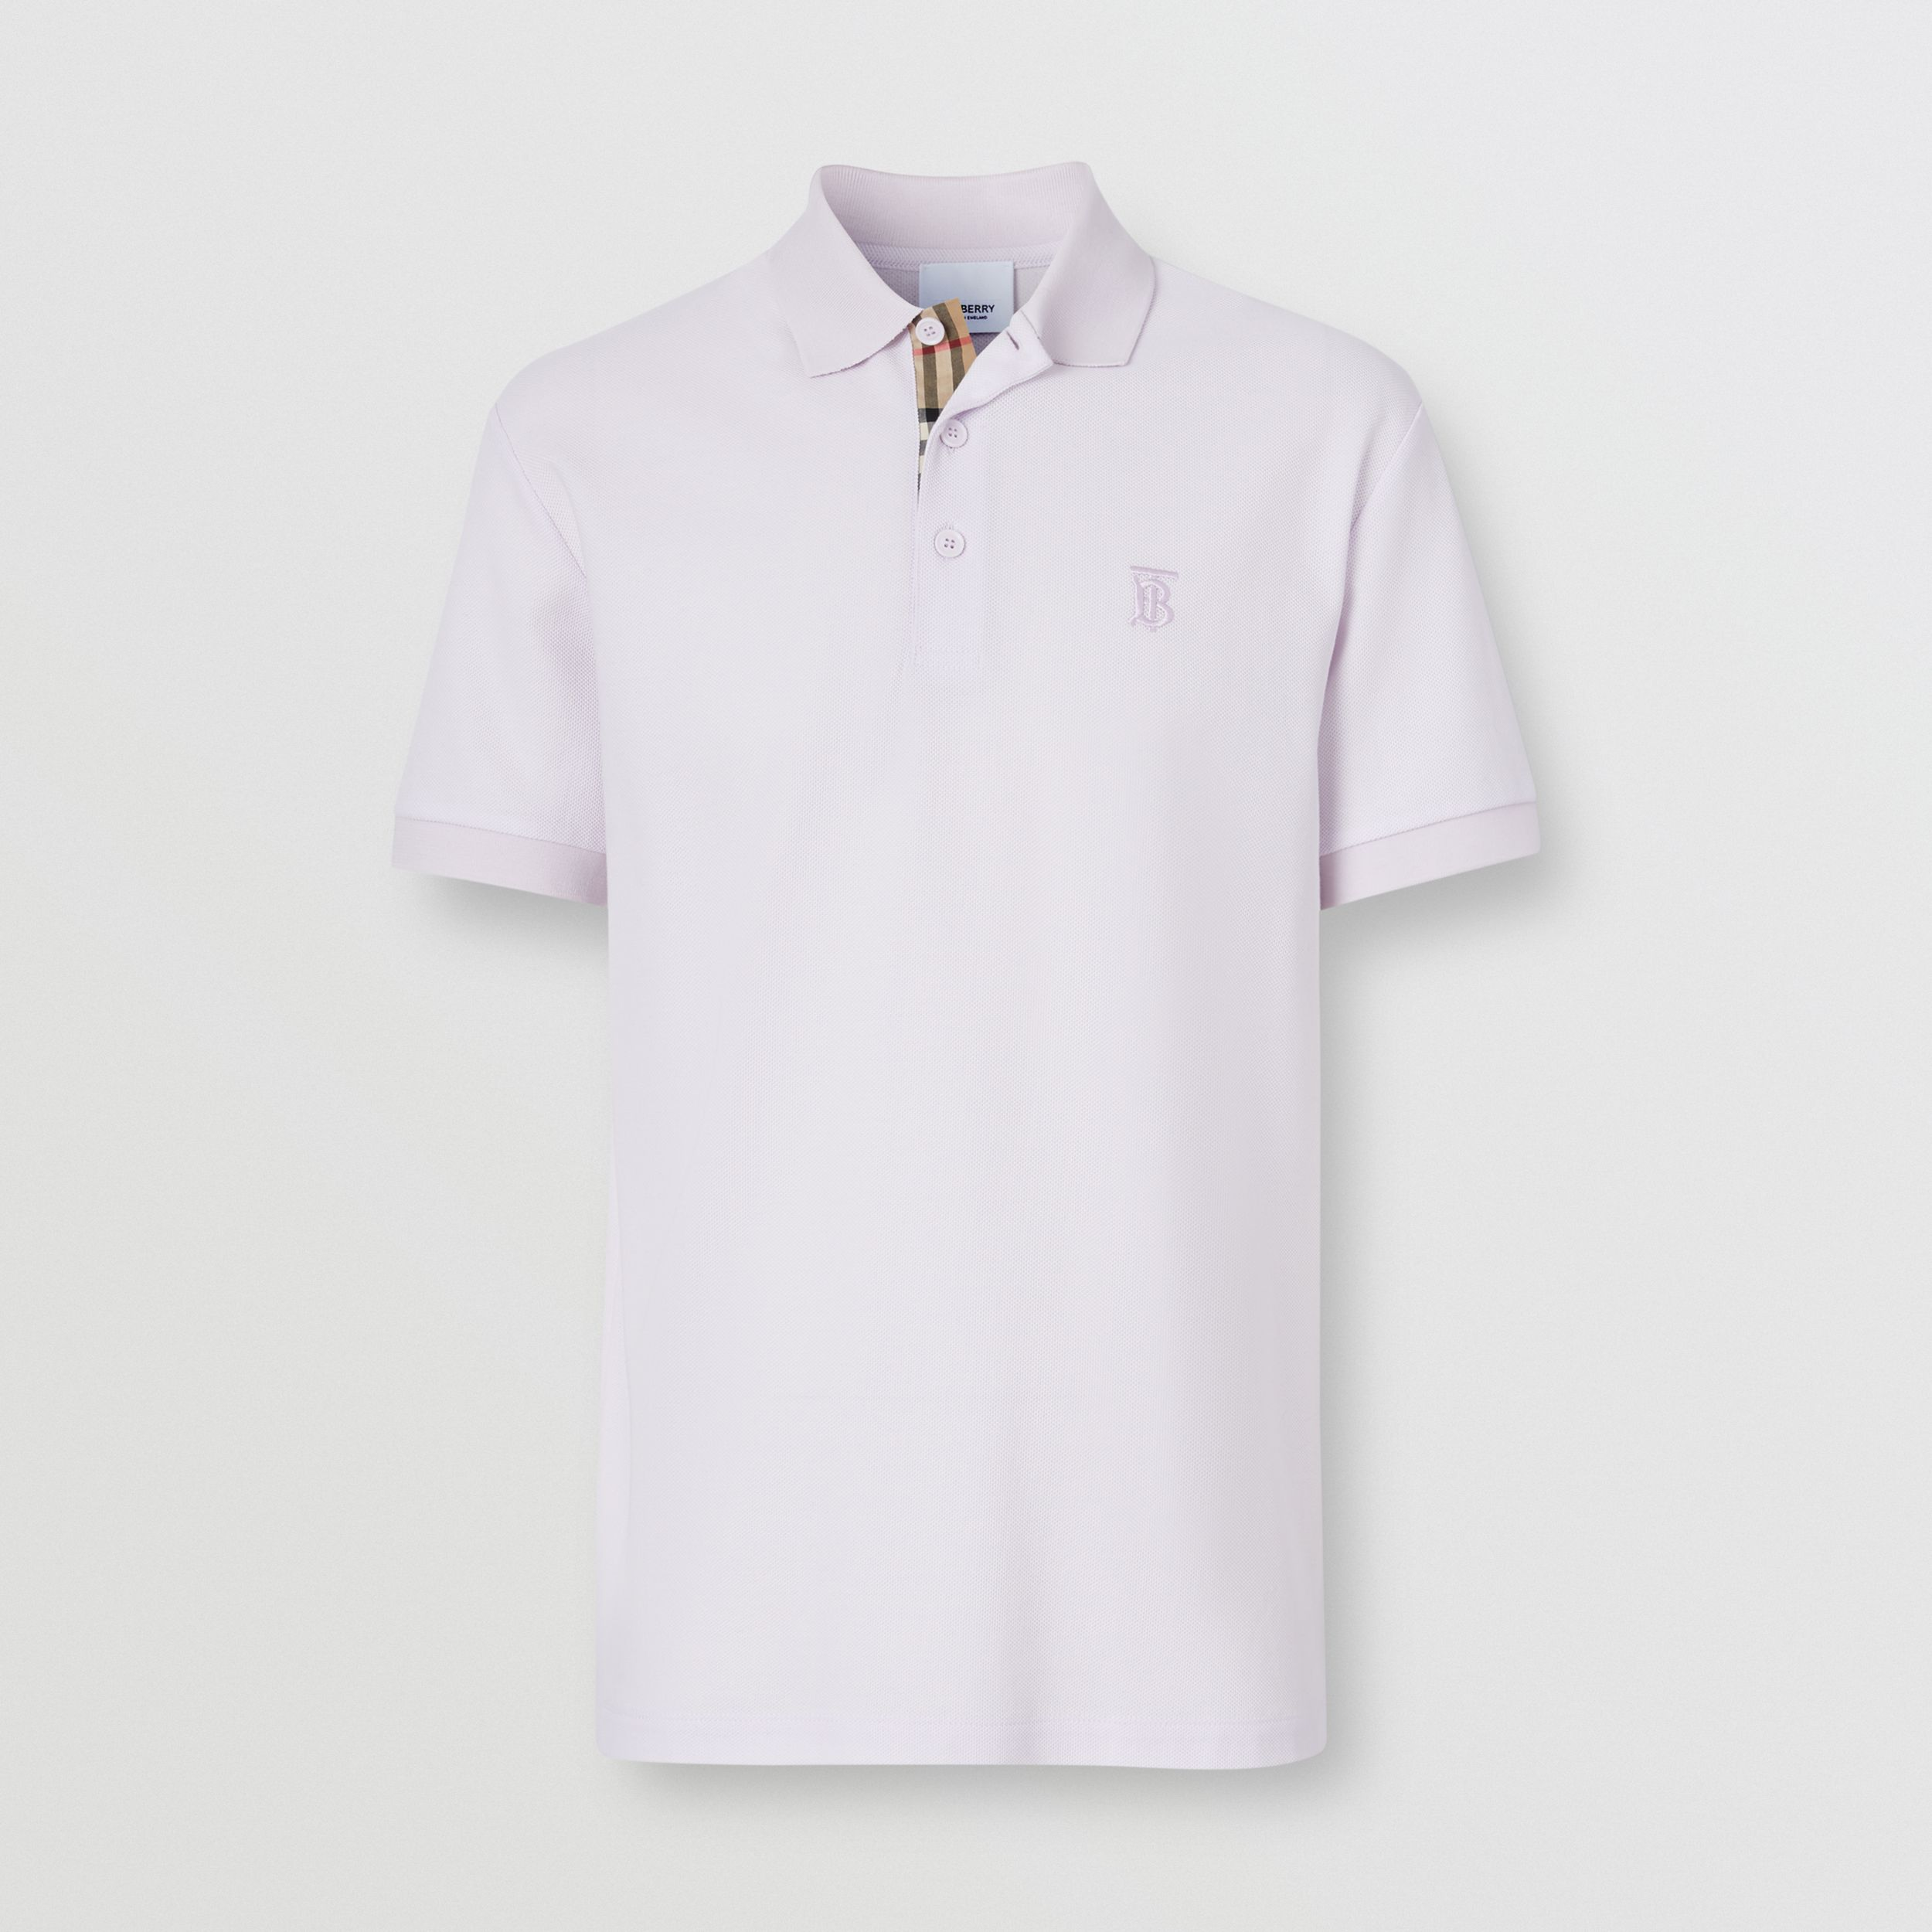 Monogram Motif Cotton Piqué Polo Shirt in Pale Thistle - Men | Burberry - 4